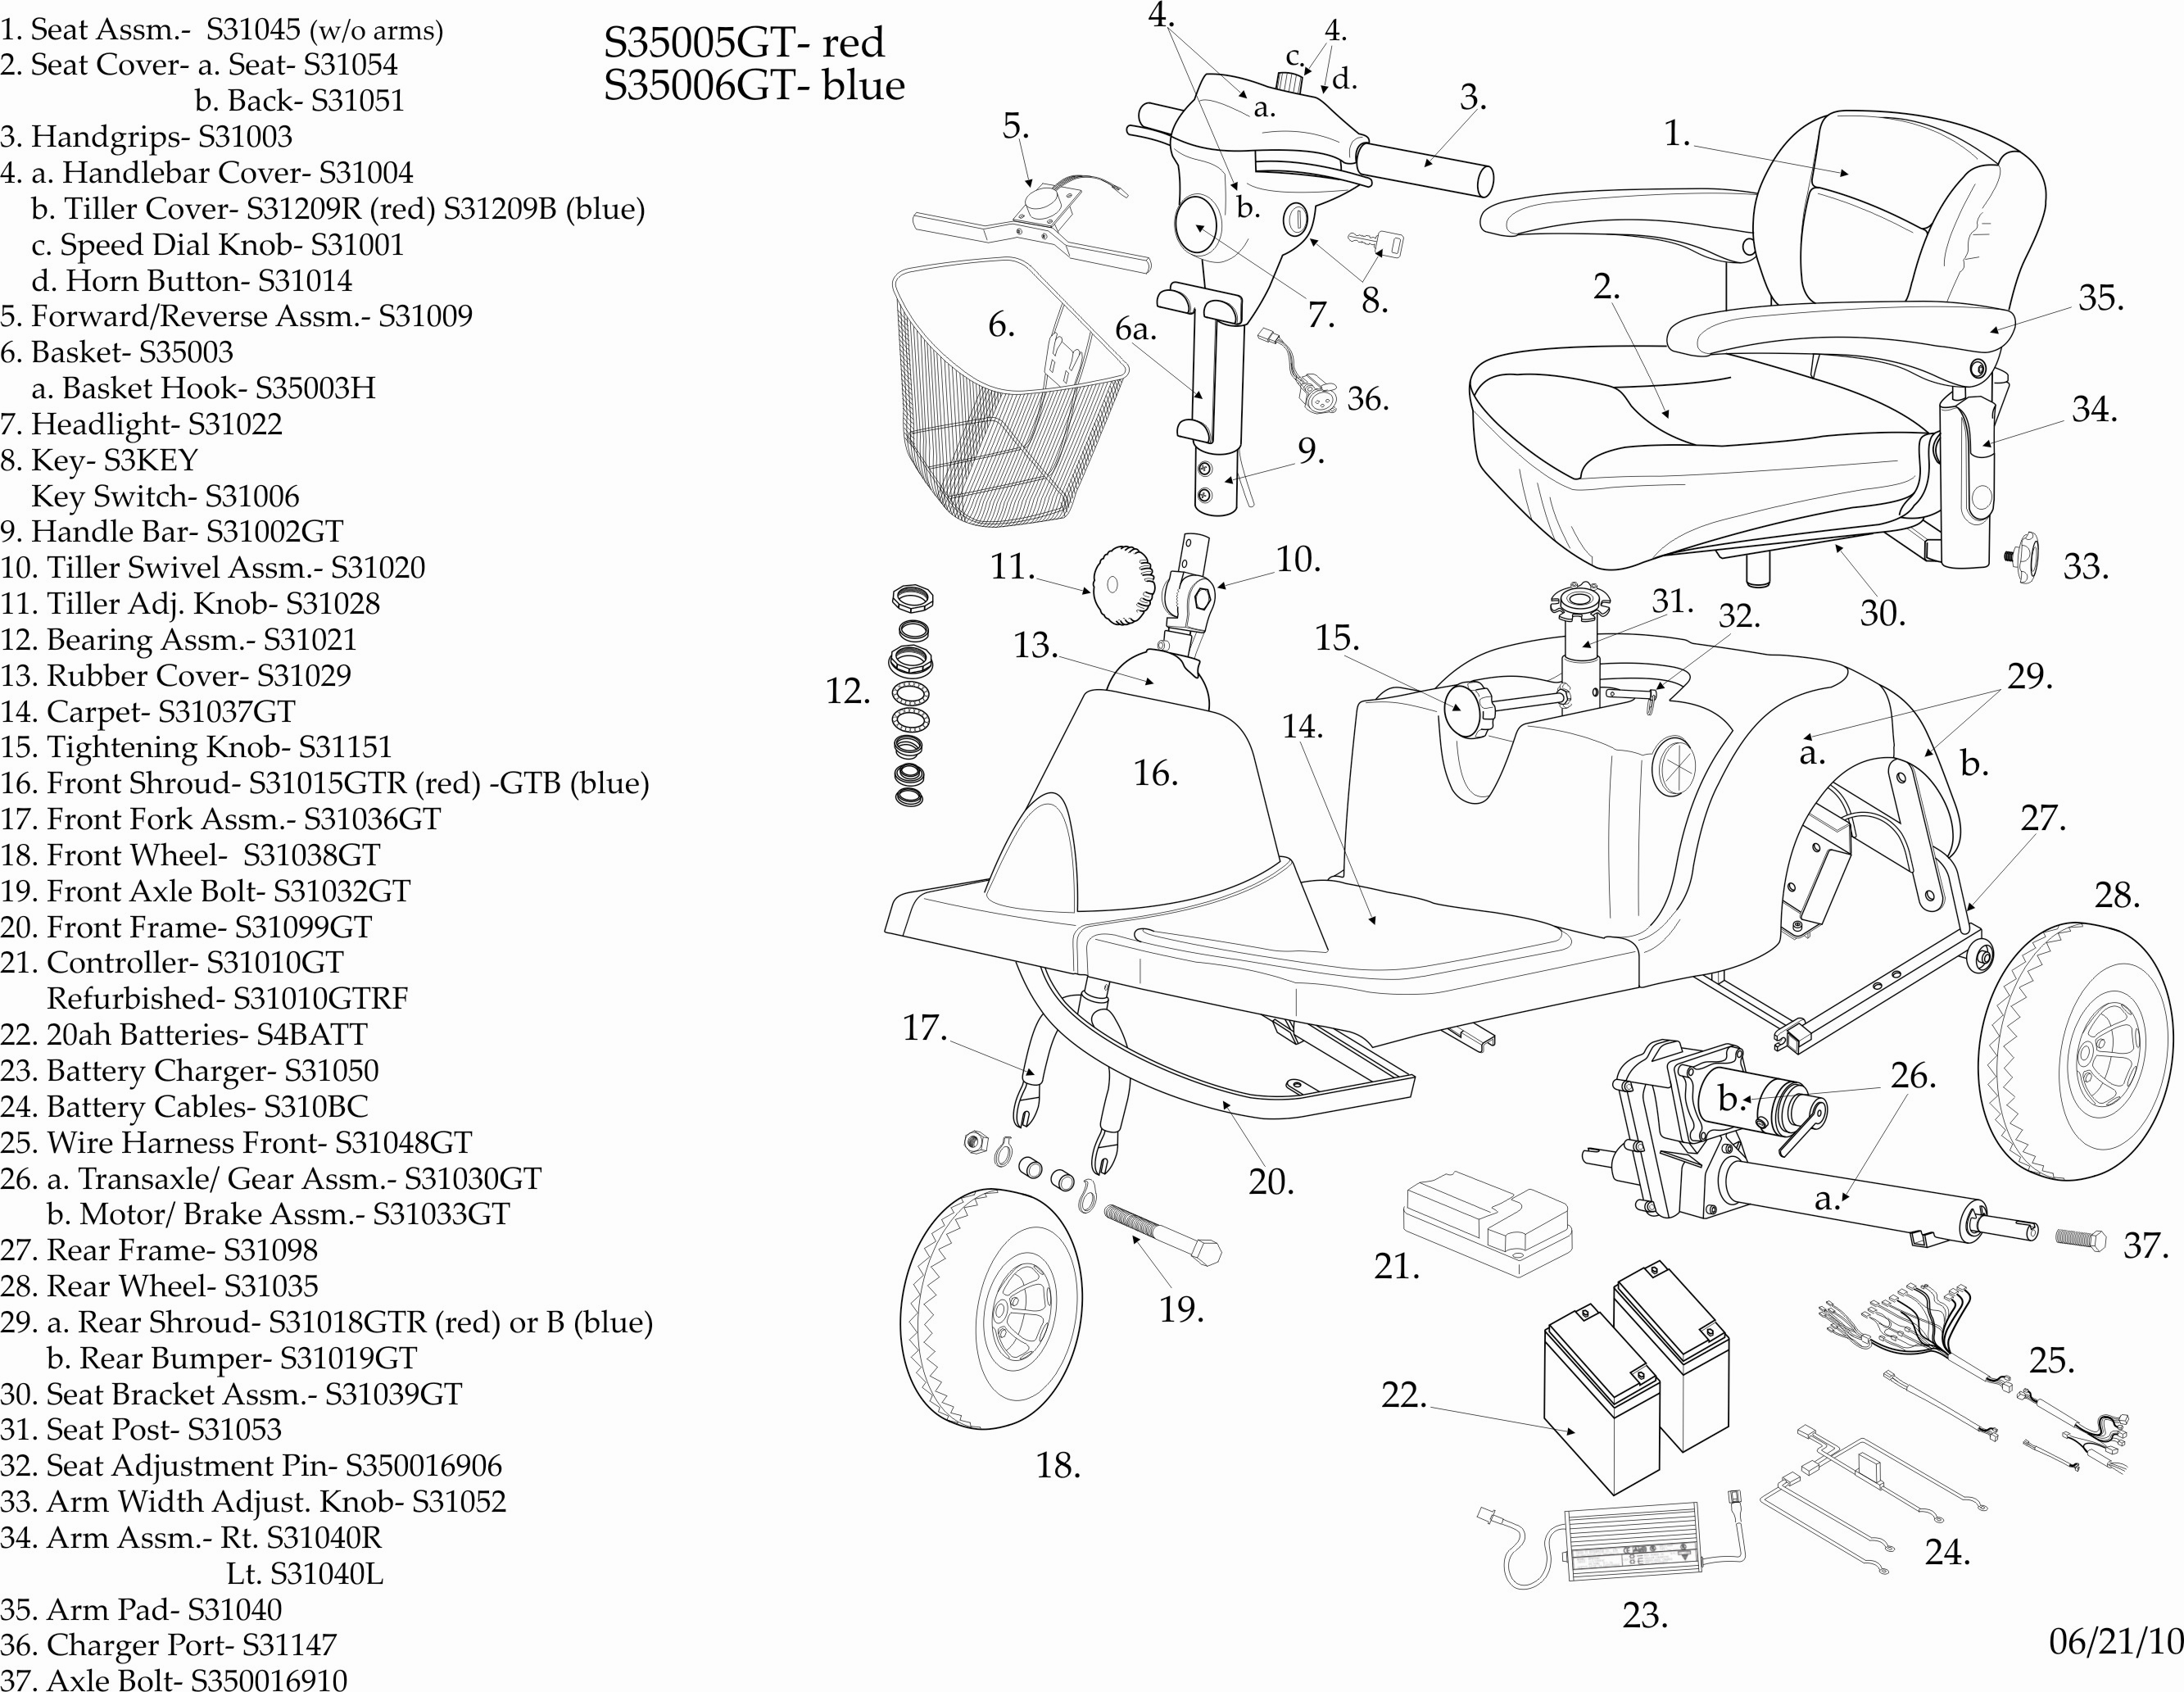 Ford 1715 Tractor Wiring Diagram Ford 3930 Wiring-Diagram